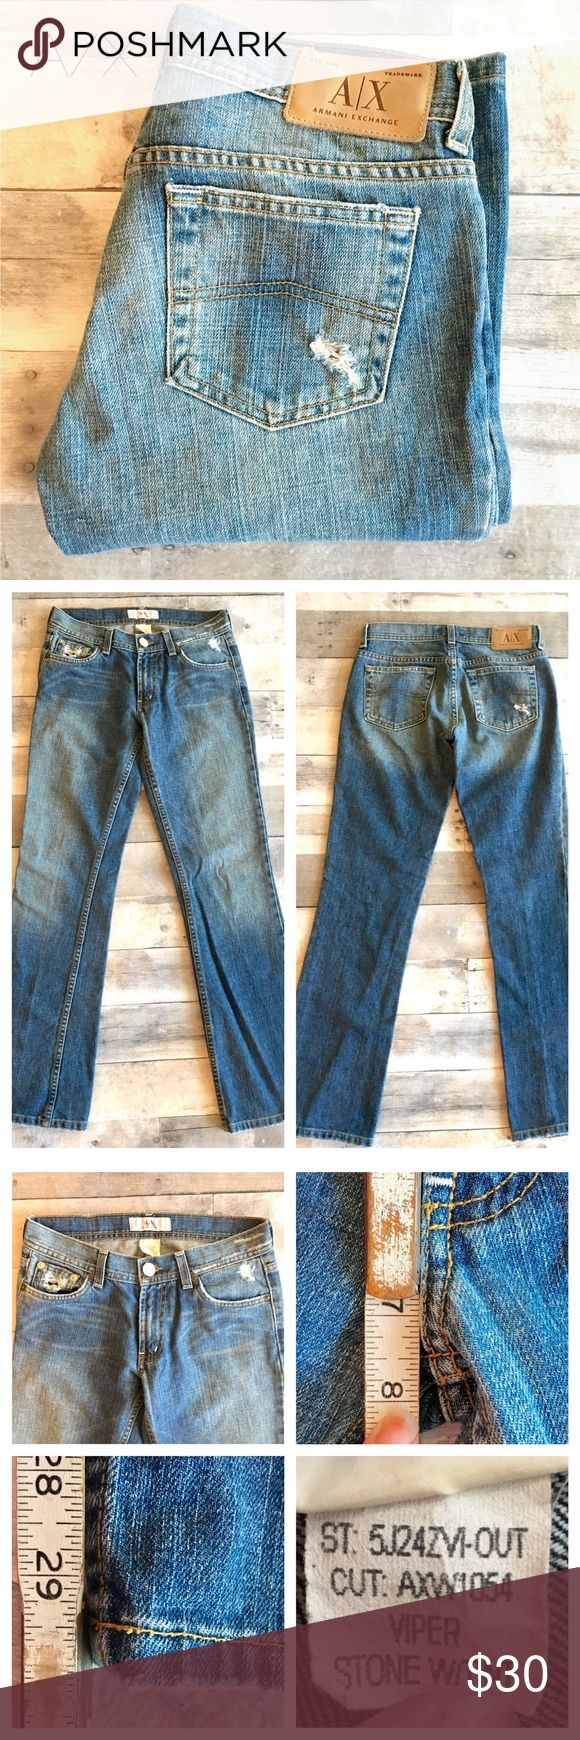 A/X - Viper Bootcut Denim light distress Armani Exchange Viper bootcut Denim Jeans Made in USA Light distressing  Measurements shown in pictures  🚫 Trades 🚫 Modeling   Thanks for checking out this item! 😊 Be sure to add other items from my Closet to your Bundle before you Checkout for 15% discount off your order! A/X Armani Exchange Jeans Boot Cut